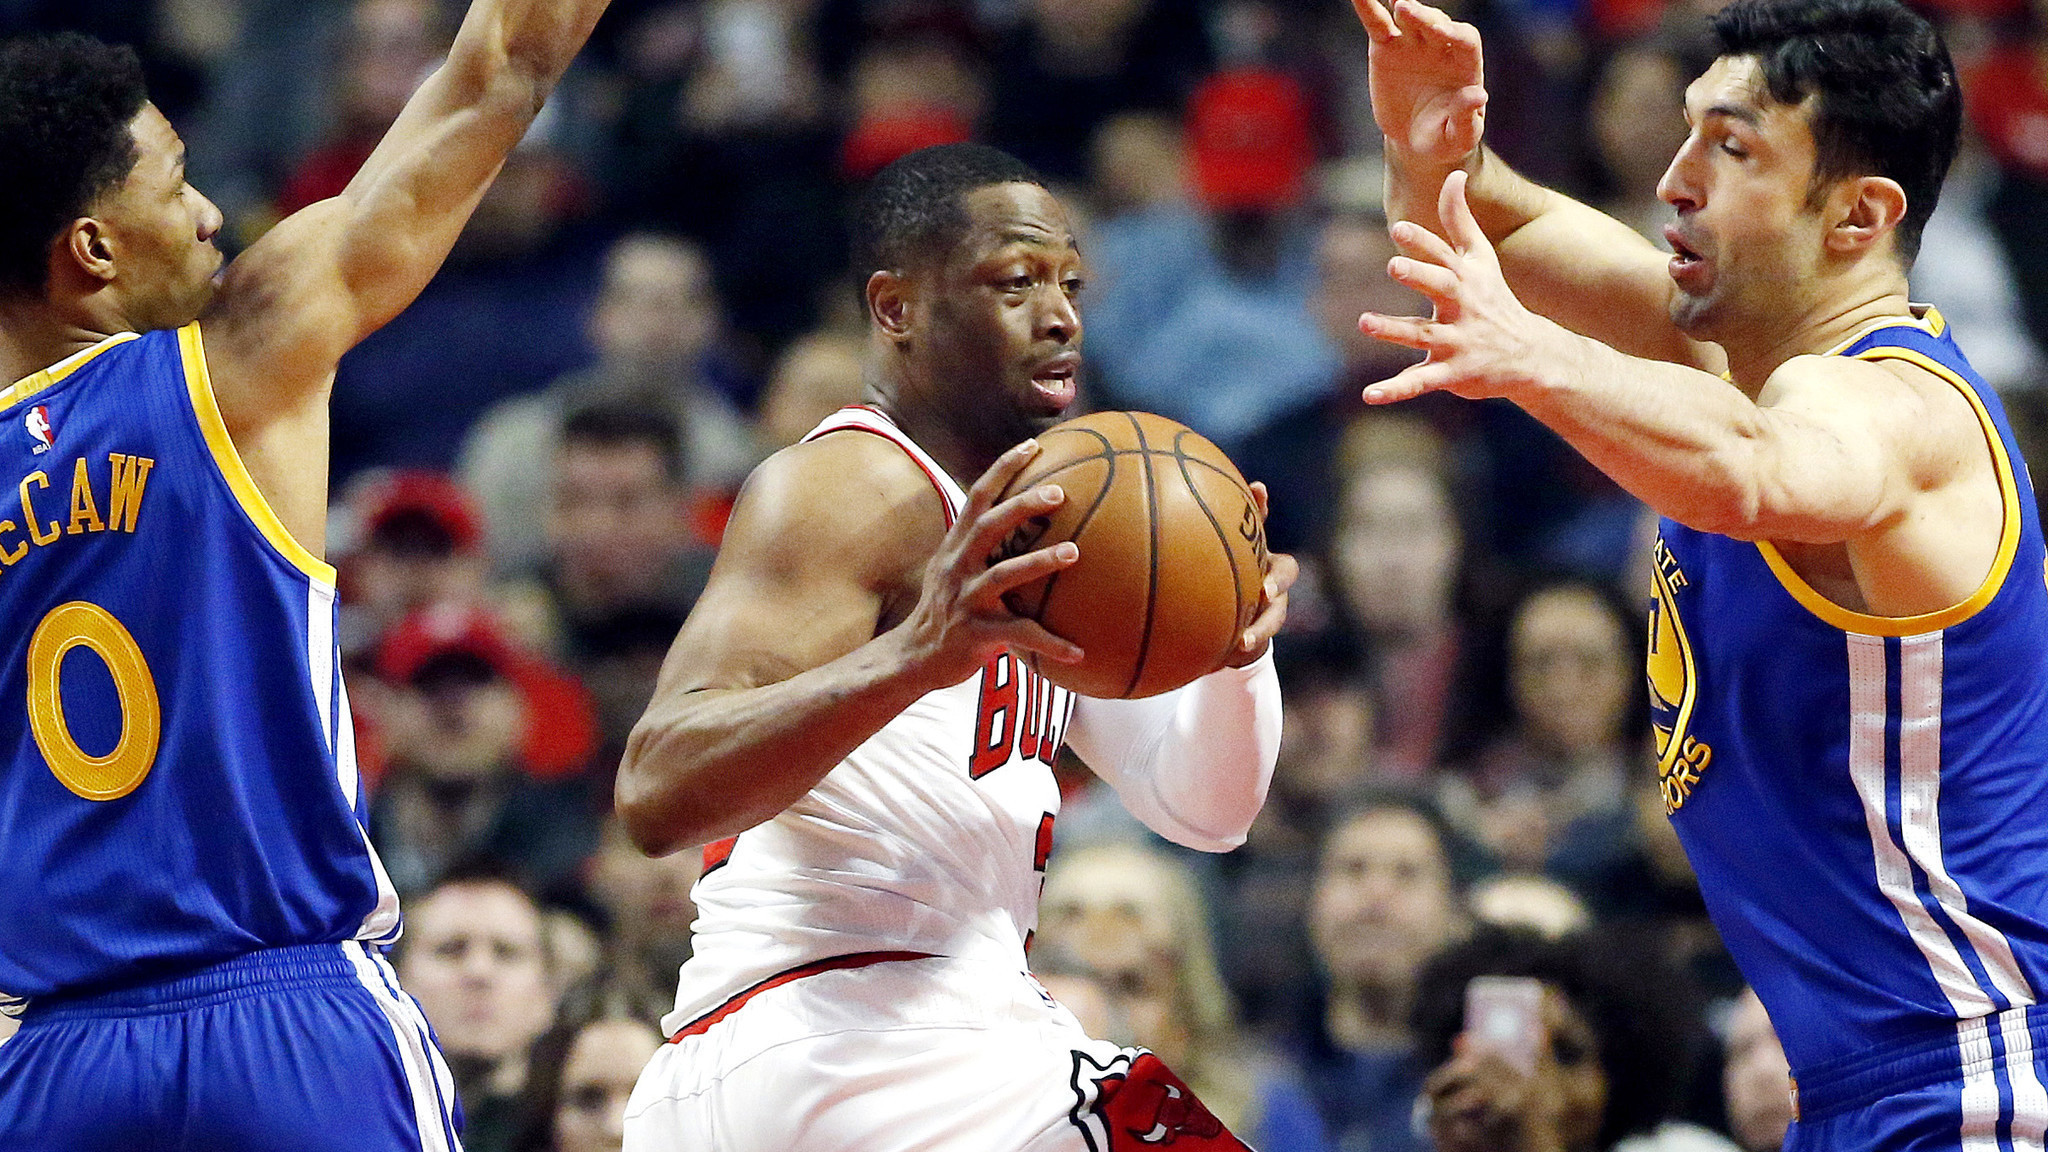 Dwyane Wade agrees to buyout with Chicago Bulls - LA Times